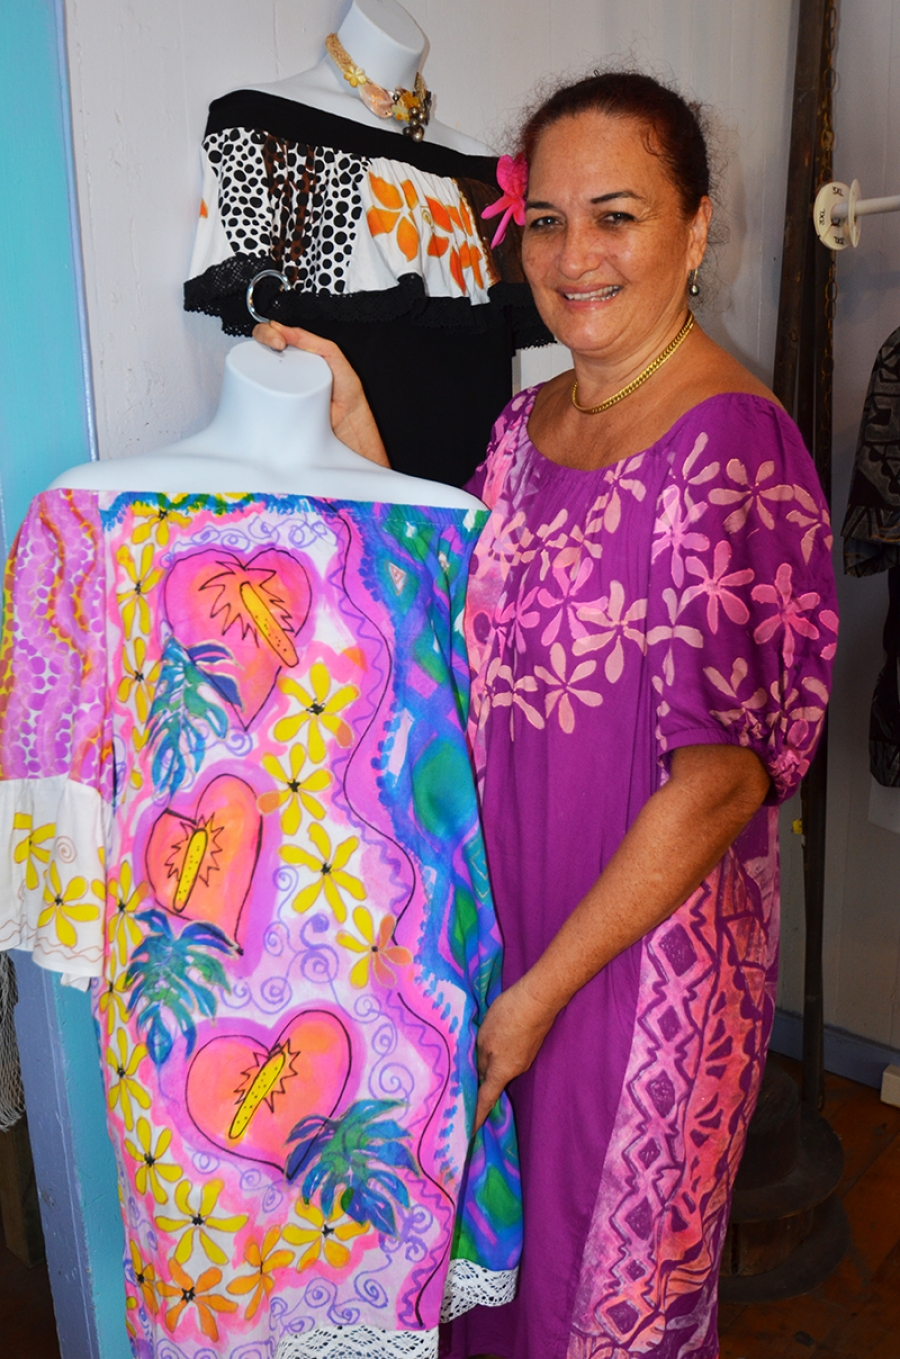 Gina's wearable works of art